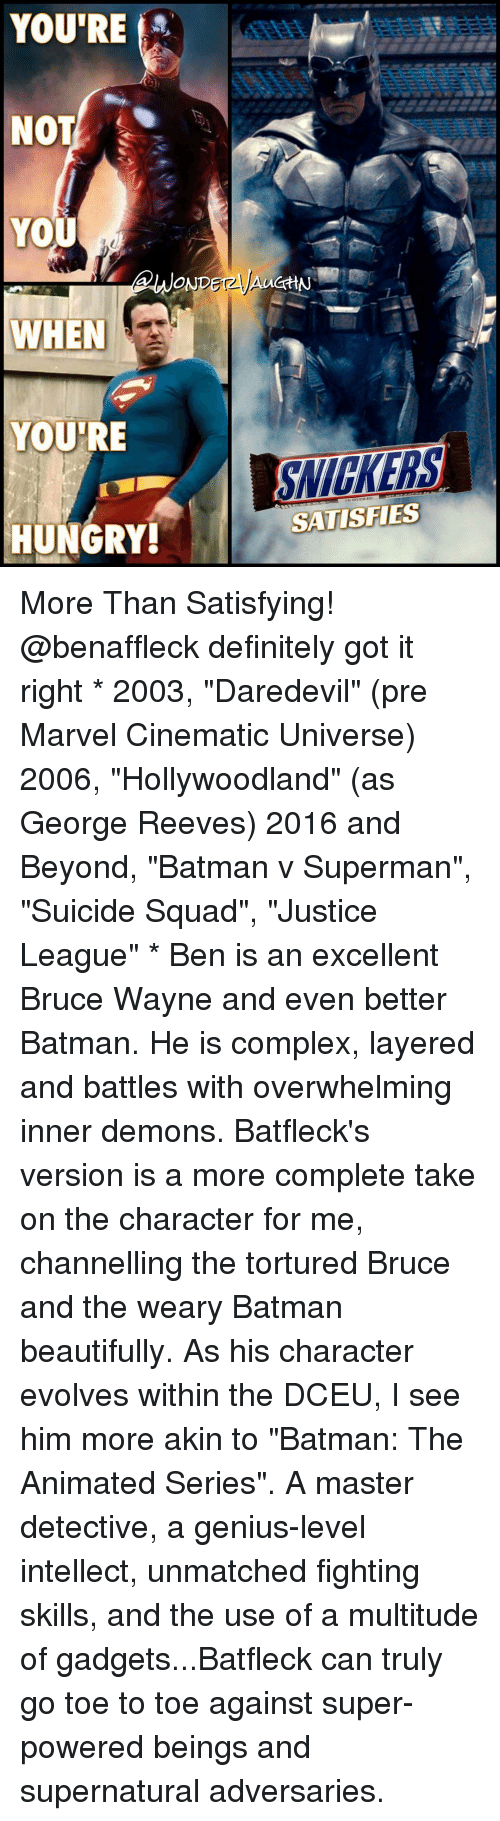 "Complex, Memes, and Suicide Squad: YOU'RE  NOT  YOU  WHEN  YOURE  HUNGRY!  GHN  SATISFIES More Than Satisfying! @benaffleck definitely got it right * 2003, ""Daredevil"" (pre Marvel Cinematic Universe) 2006, ""Hollywoodland"" (as George Reeves) 2016 and Beyond, ""Batman v Superman"", ""Suicide Squad"", ""Justice League"" * Ben is an excellent Bruce Wayne and even better Batman. He is complex, layered and battles with overwhelming inner demons. Batfleck's version is a more complete take on the character for me, channelling the tortured Bruce and the weary Batman beautifully. As his character evolves within the DCEU, I see him more akin to ""Batman: The Animated Series"". A master detective, a genius-level intellect, unmatched fighting skills, and the use of a multitude of gadgets...Batfleck can truly go toe to toe against super-powered beings and supernatural adversaries."